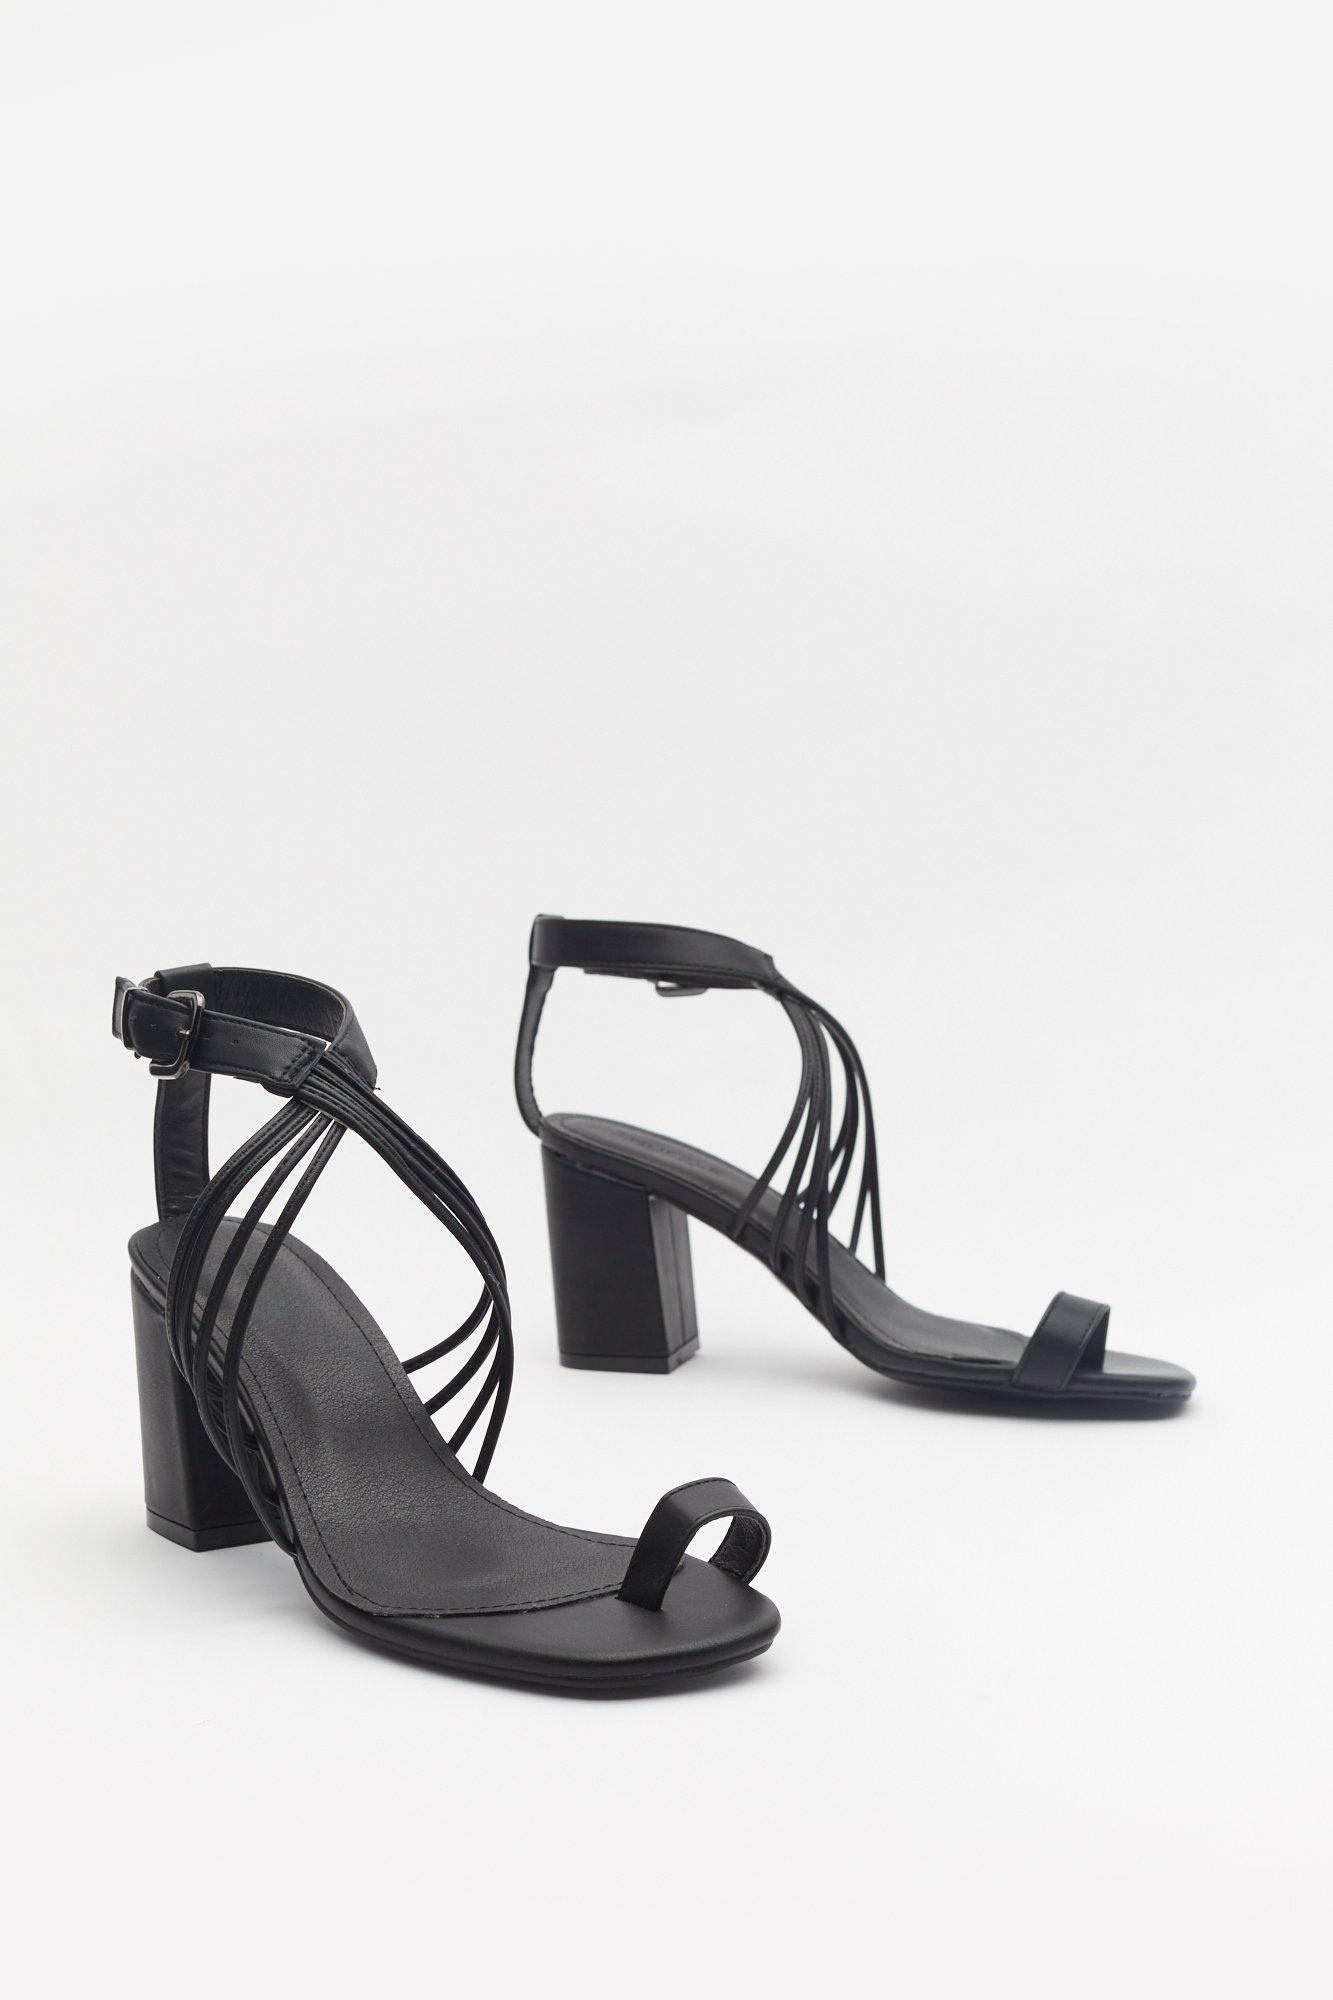 Make It Strappy Faux Leather Block Sandals | Nasty Gal